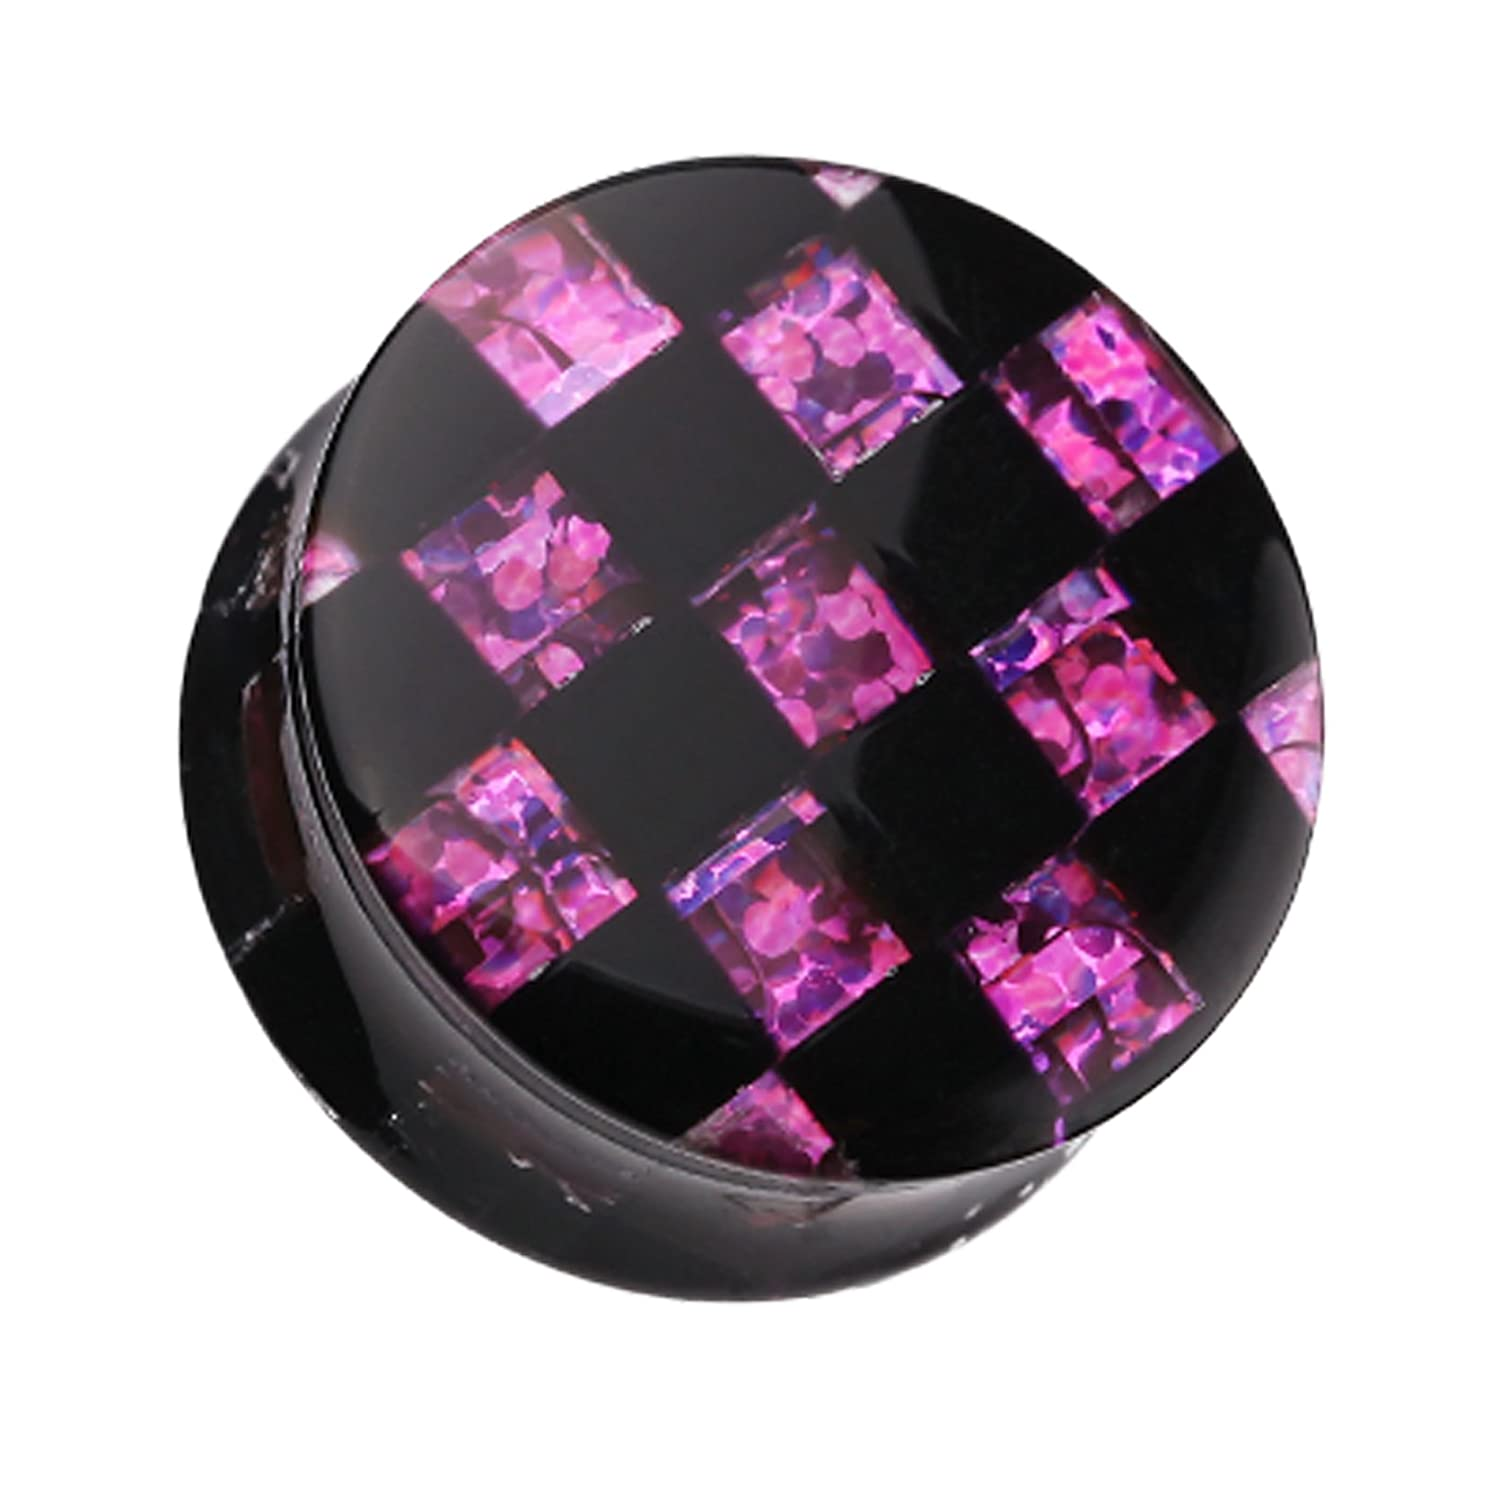 Sold as a Pair Purple Marbled Checker Stripe Double Flared Ear Plug